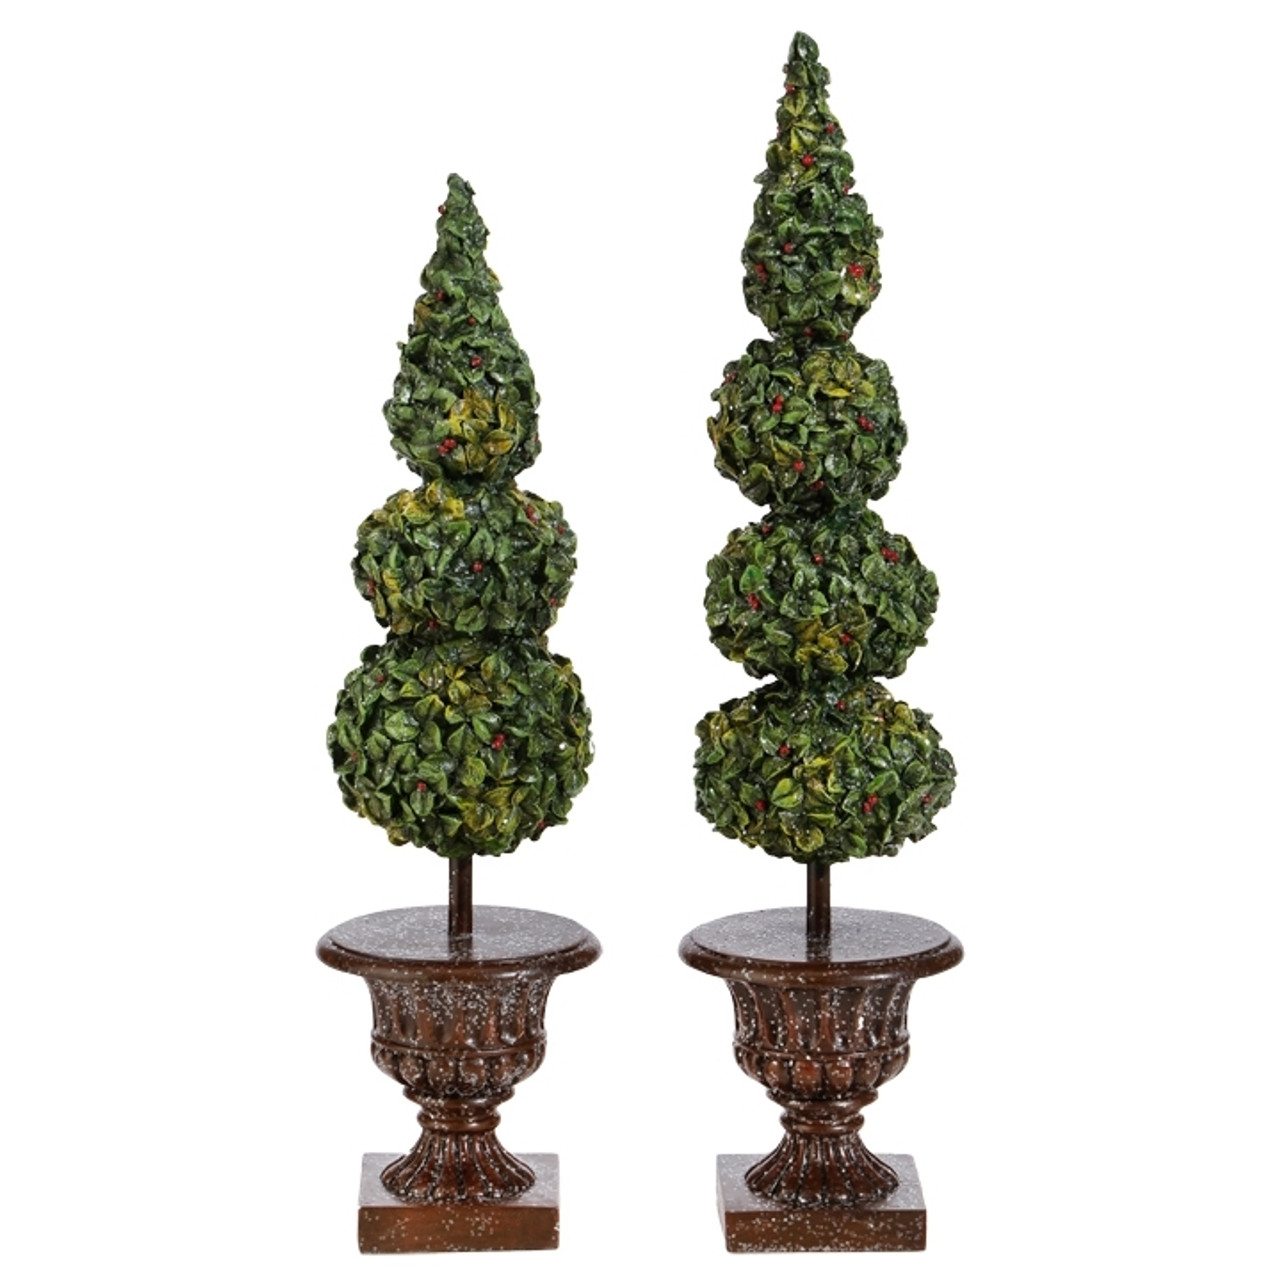 Christmas Topiary.Christmas Topiary Trees In Pot Set Of 2 46cm